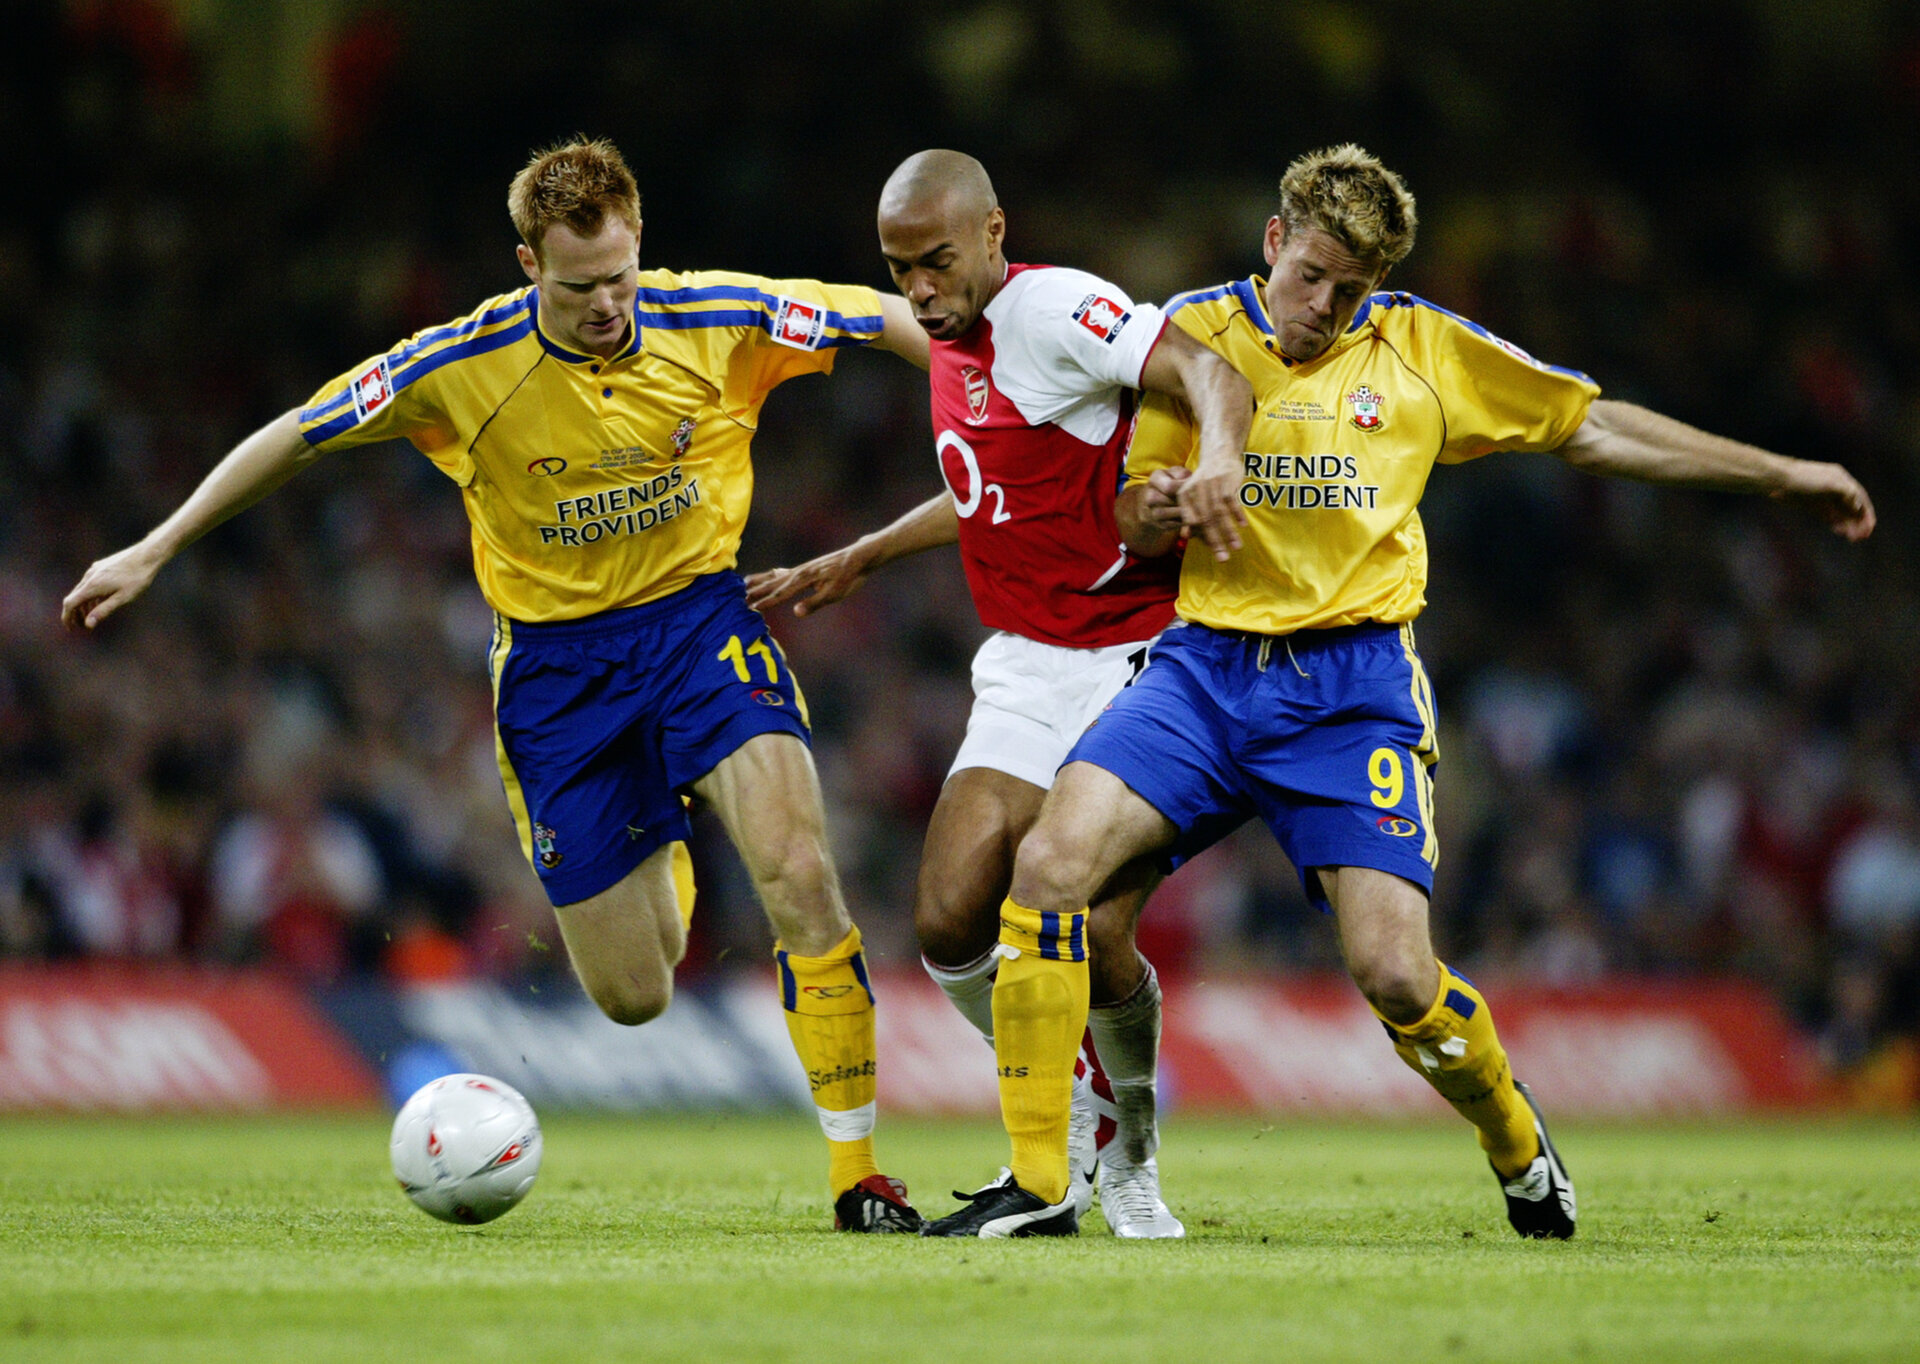 CARDIFF - MAY 17:  Thierry Henry of Arsenal skips past Michael Svensson and James Beattie of Southampton during the FA Cup Final match between Arsenal and Southampton on May 17, 2003 at the Millennium Stadium in Cardiff, Wales.  Arsenal won the match and the FA cup 1-0.  (Photo by Clive Mason/Getty Images)